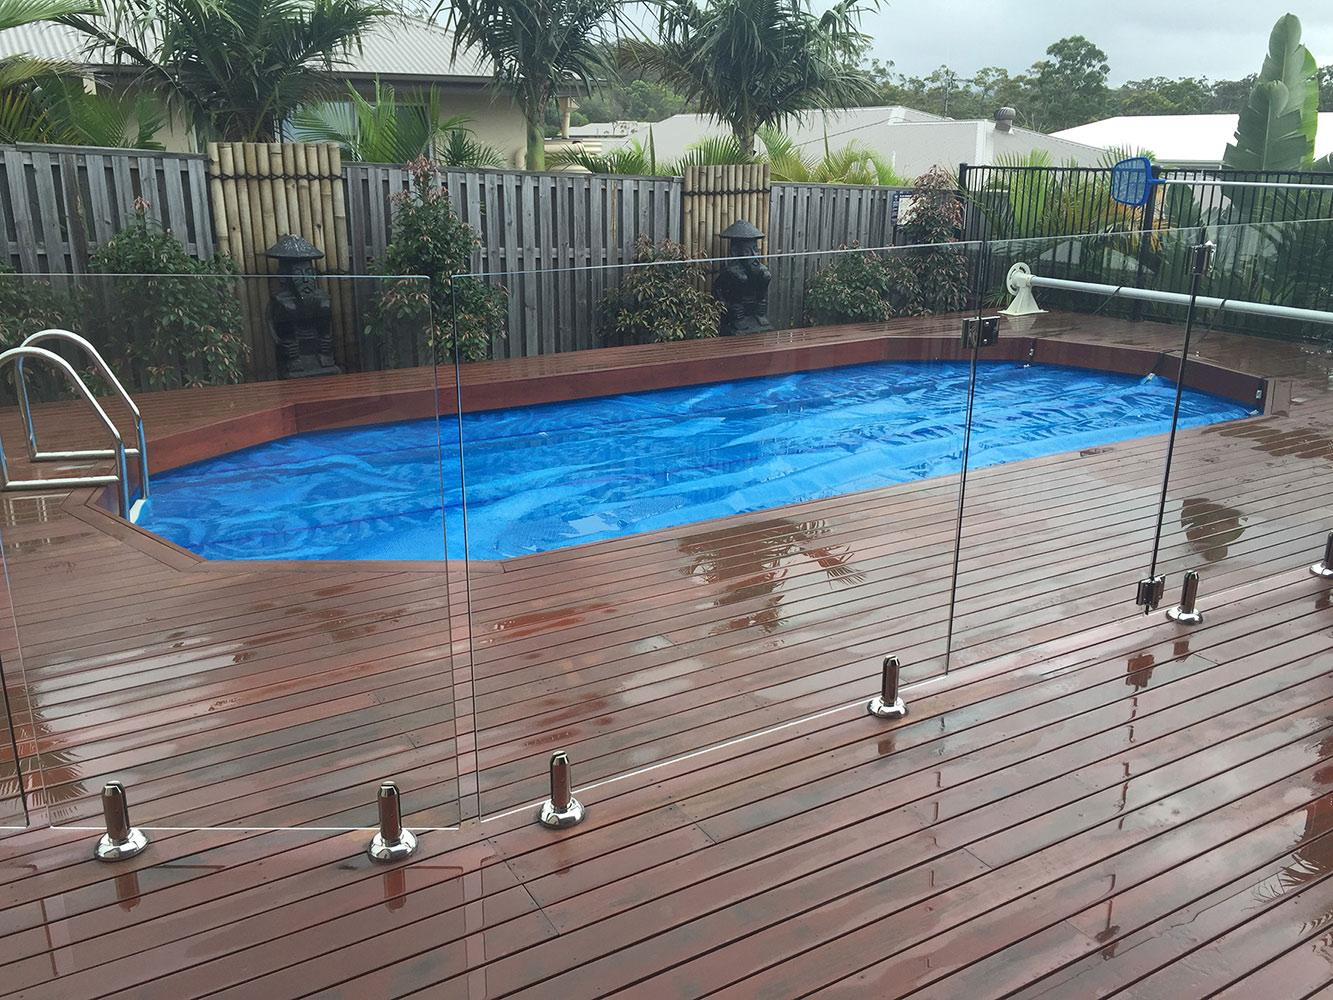 Can I build a deck around an above ground pool?